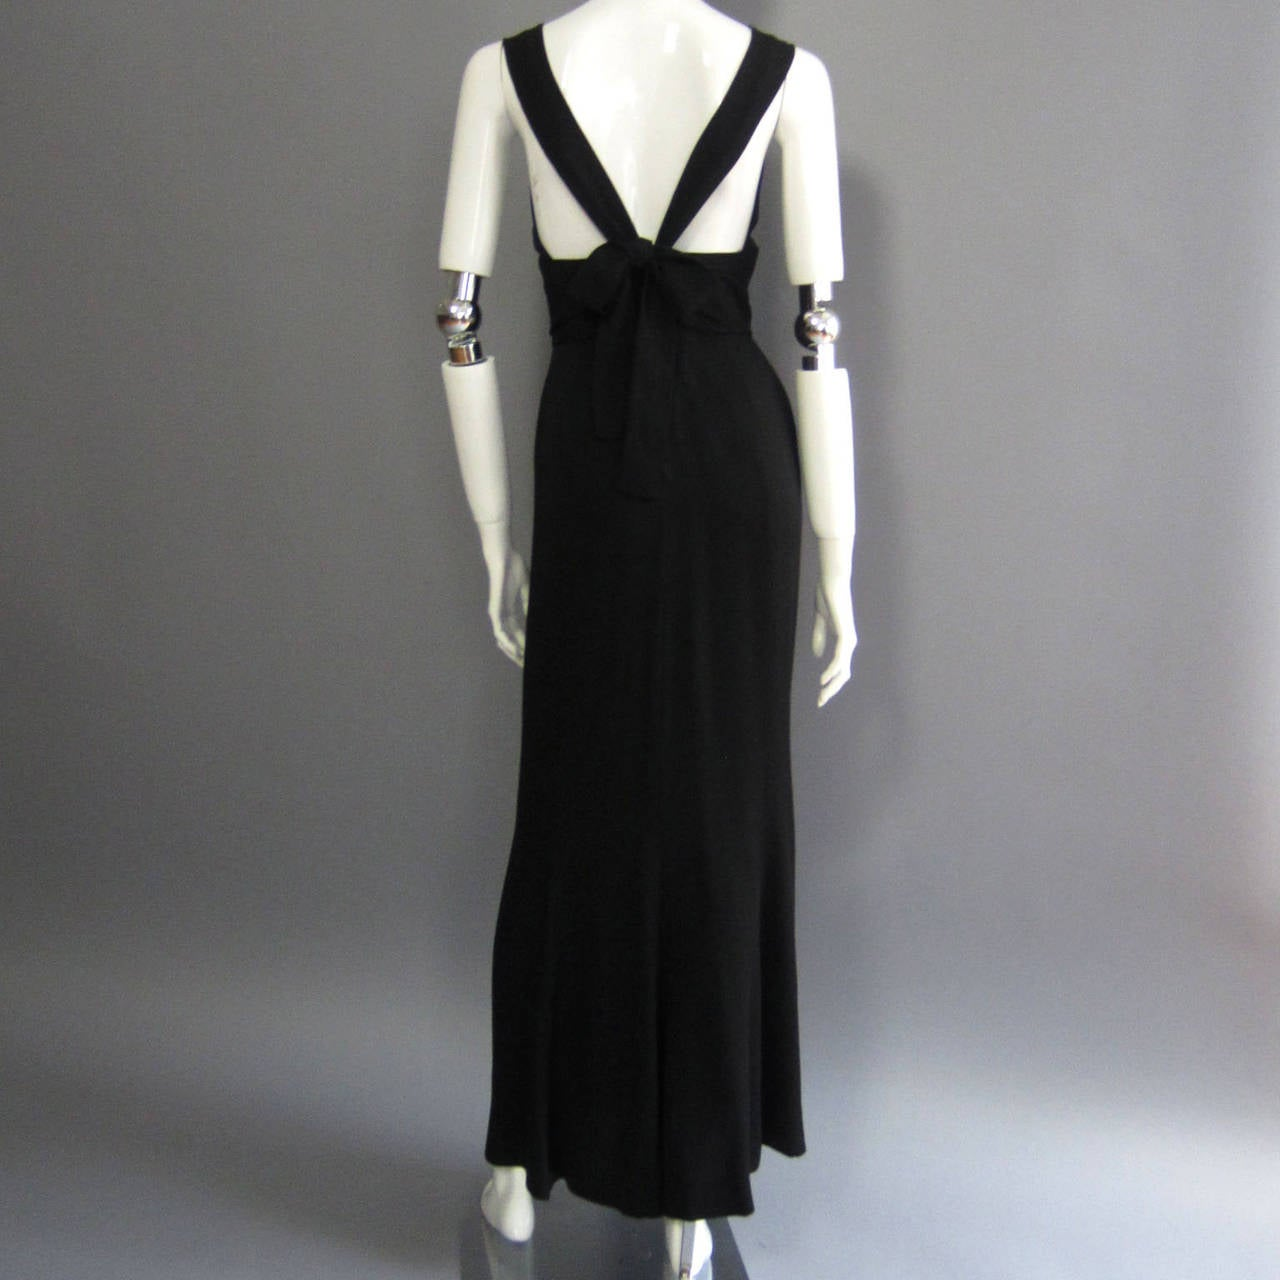 NORMAN NORELL Black Column Evening Gown with Back Tie Detail For Sale 1